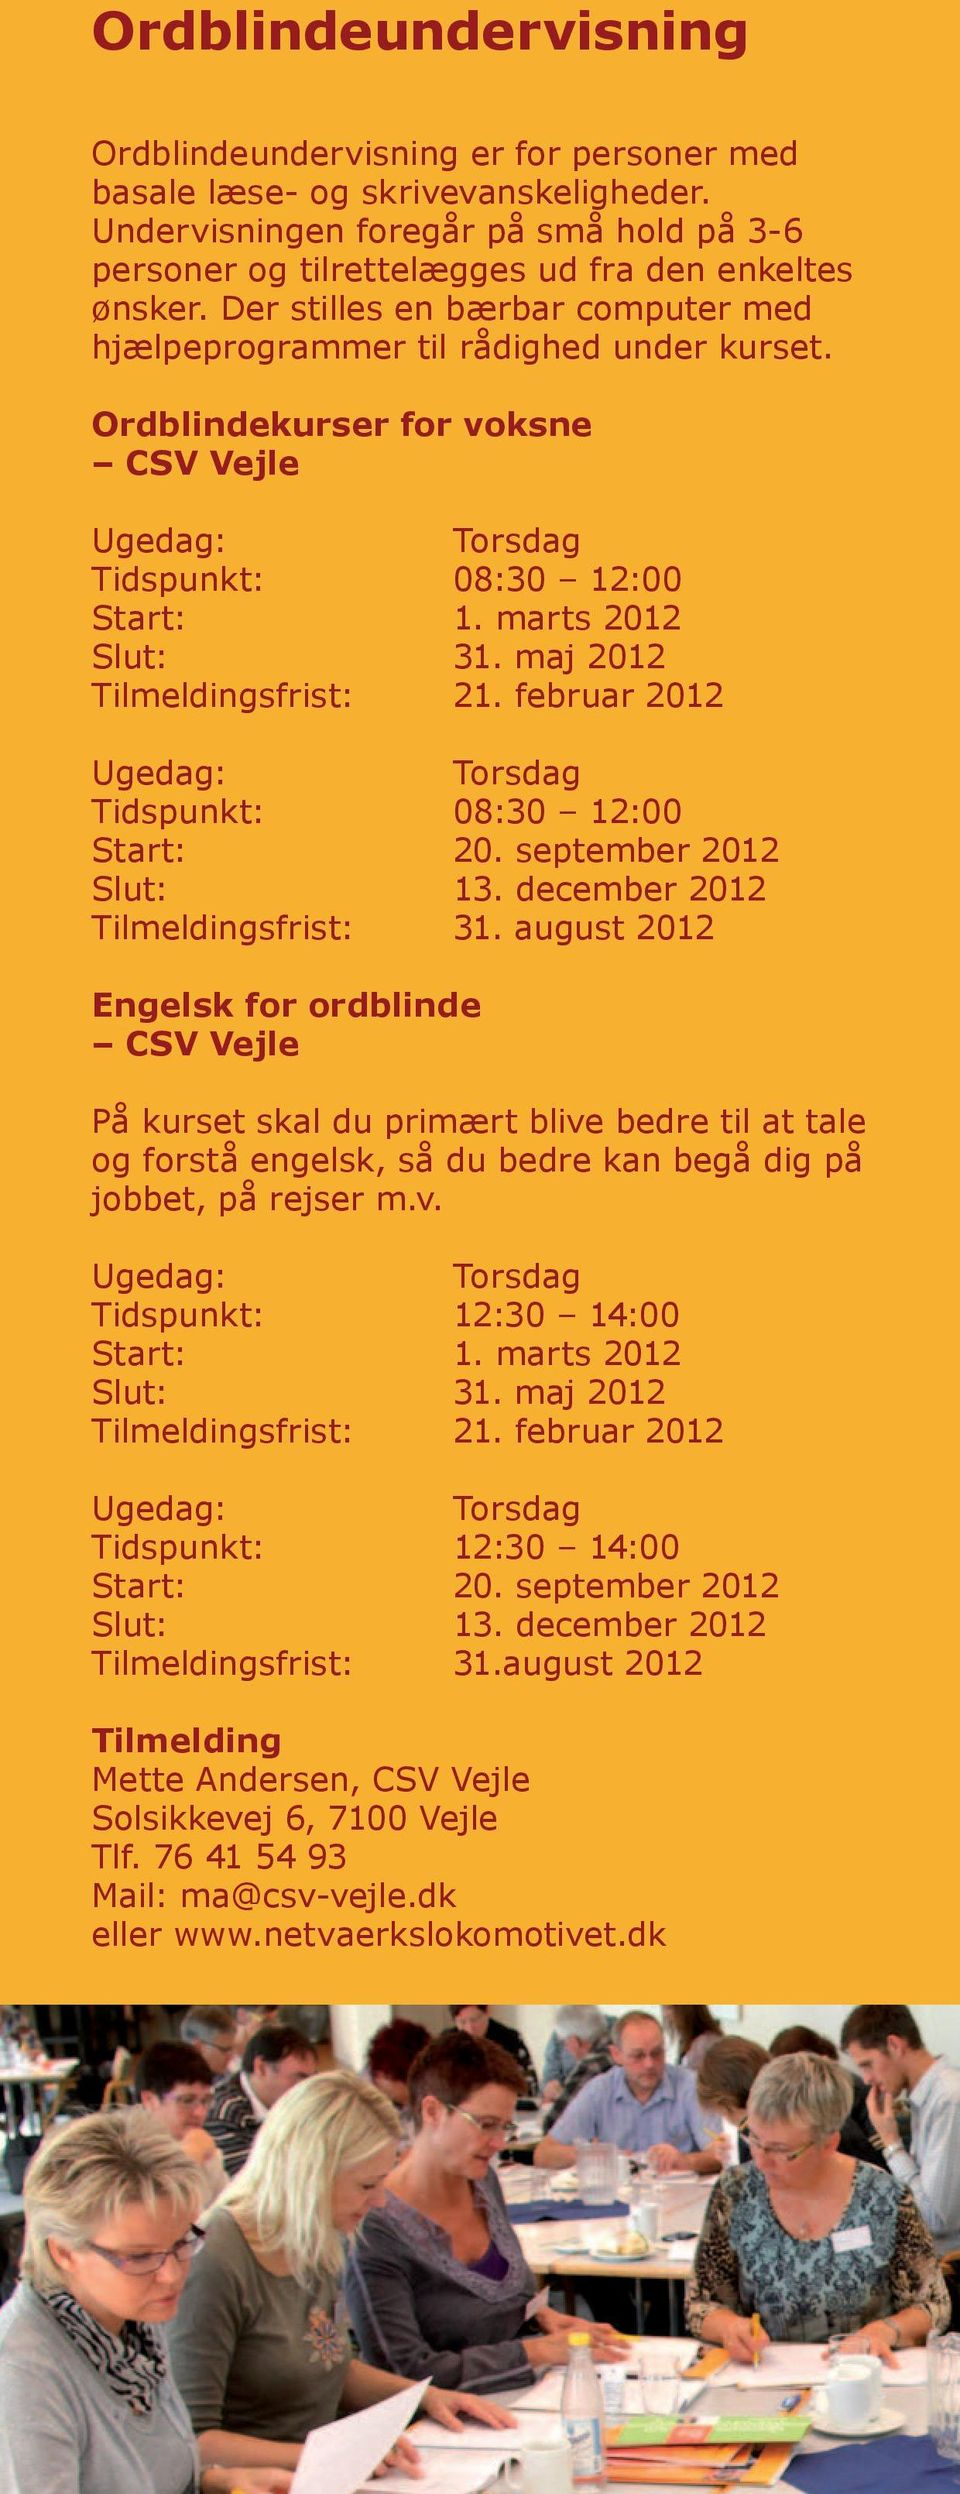 februar 2012 Tidspunkt: 08:30 12:00 Start: 20. september 2012 Slut: 13. december 2012 Tilmeldingsfrist: 31.